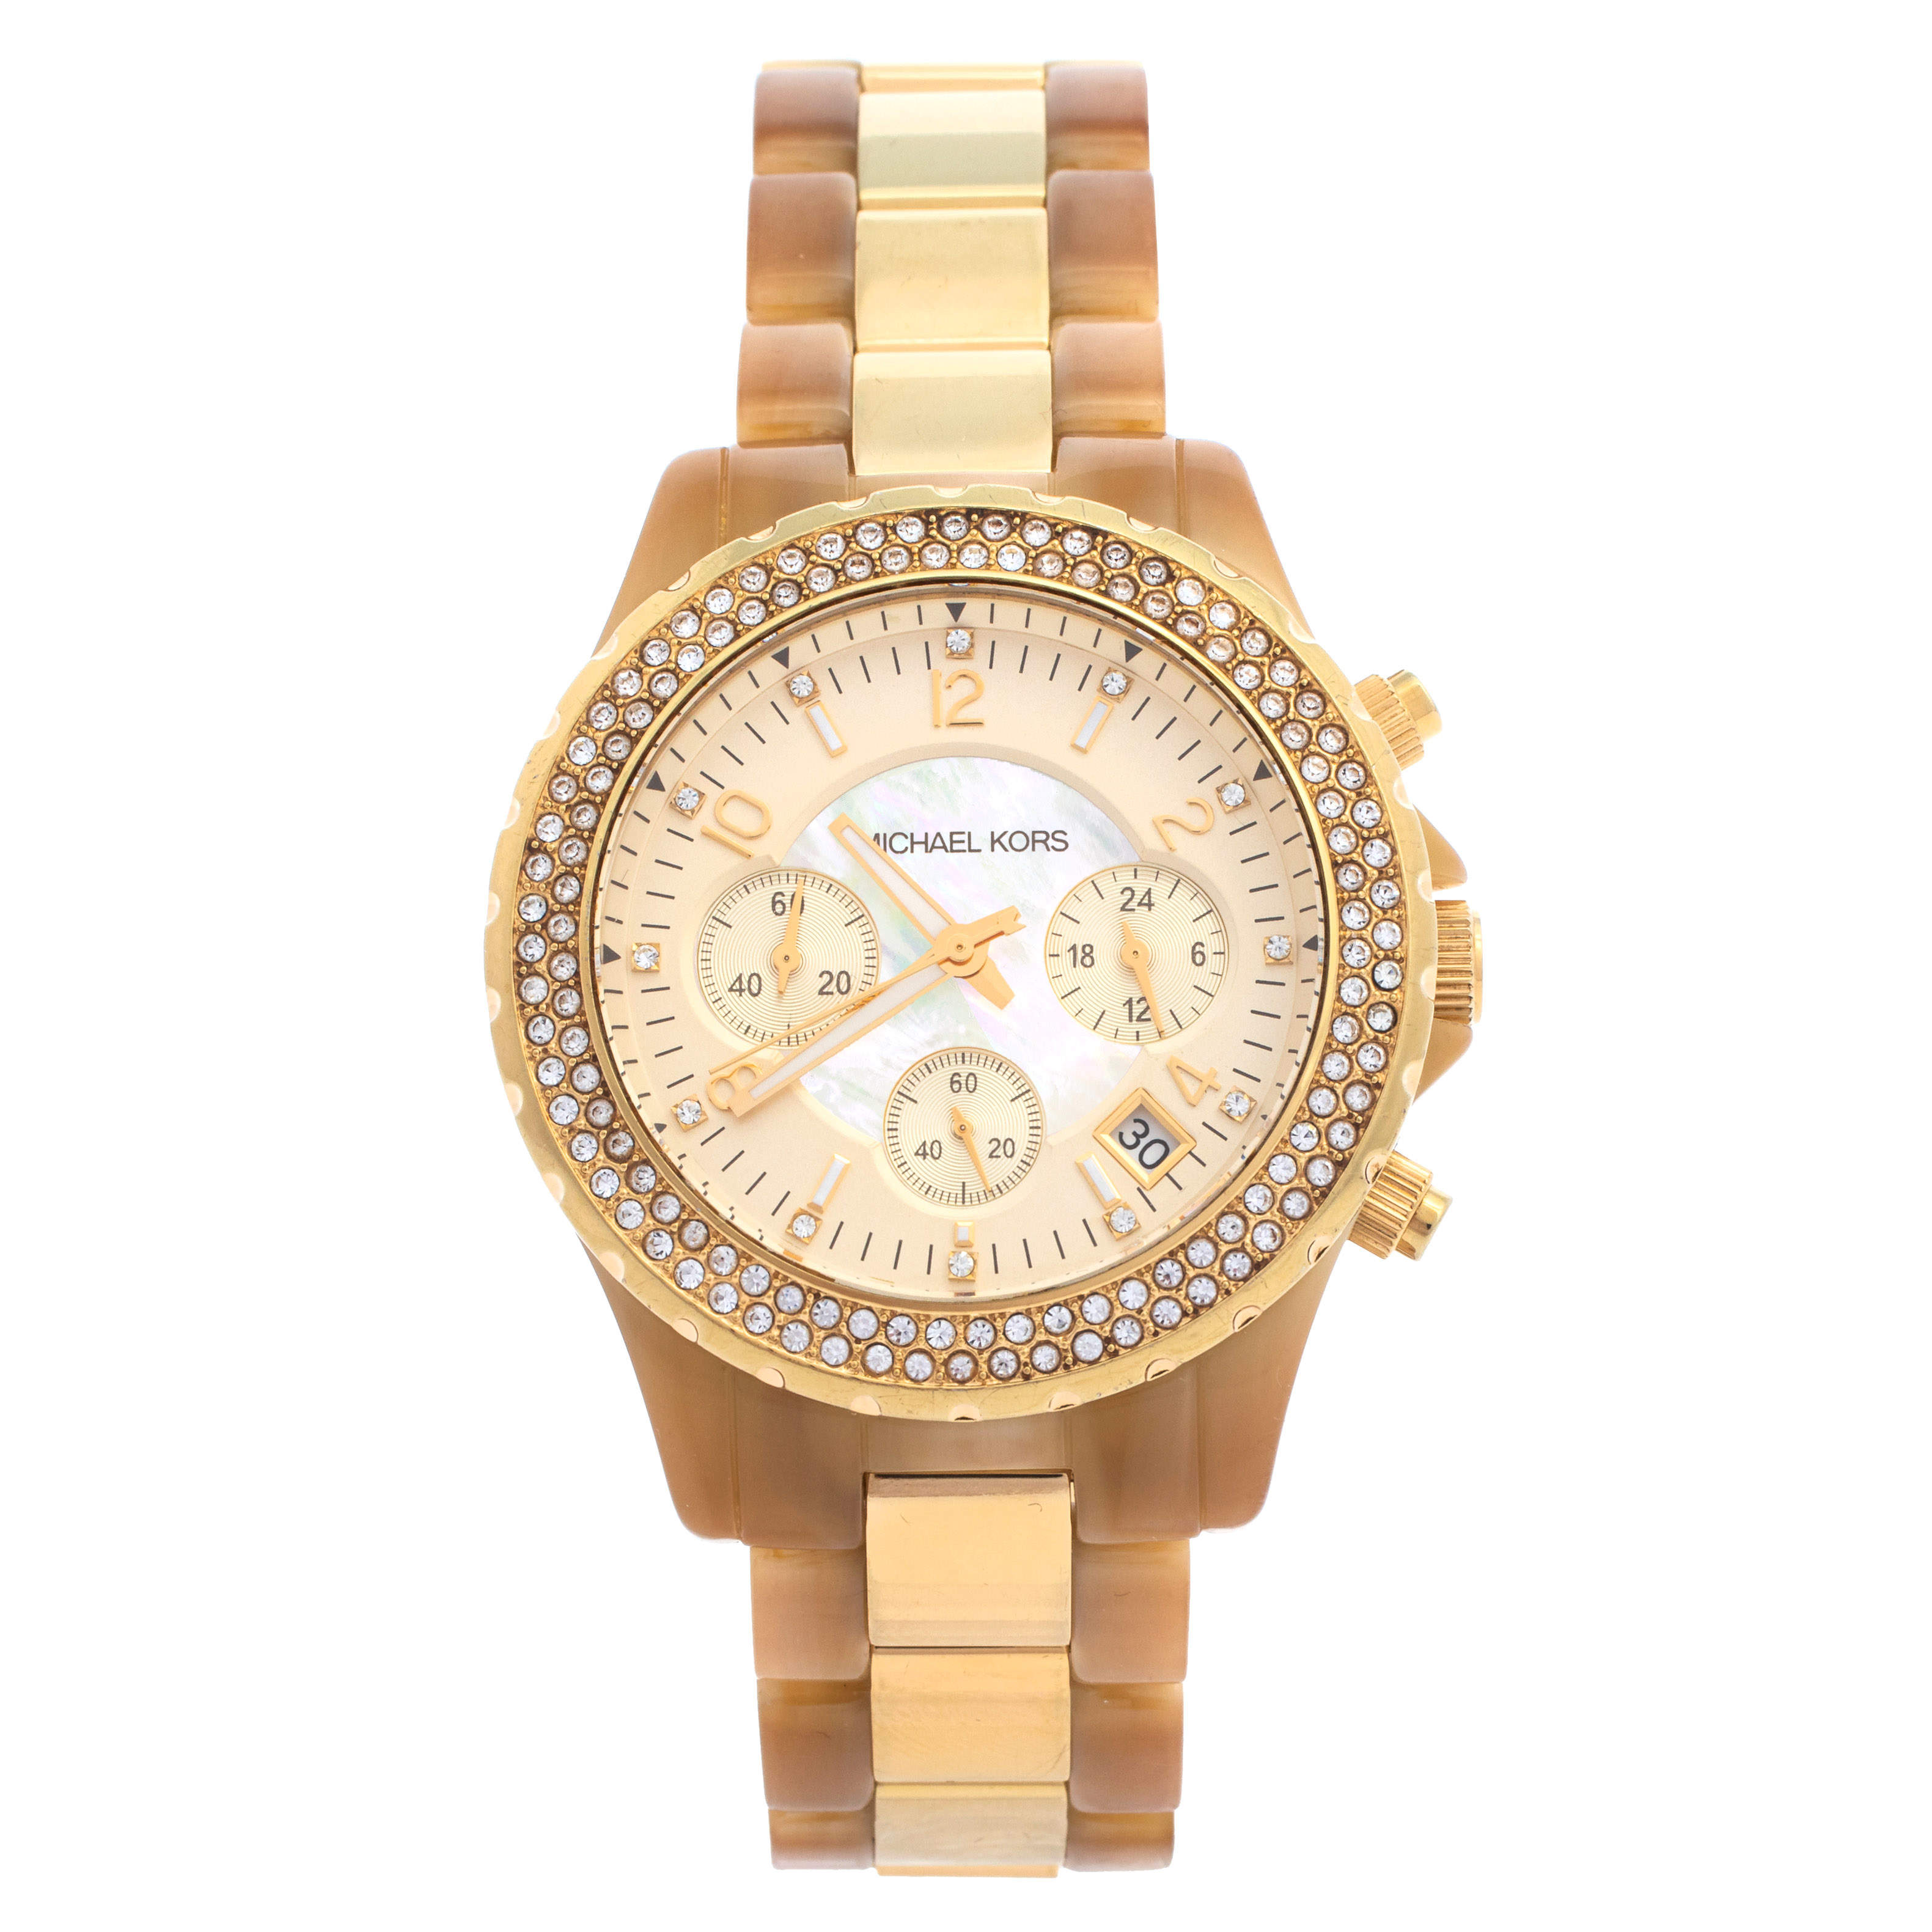 Michael Kors Gold Tone Stainless Steel Horn Acetate Madison MK5417 Women's Wristwatch 42 mm